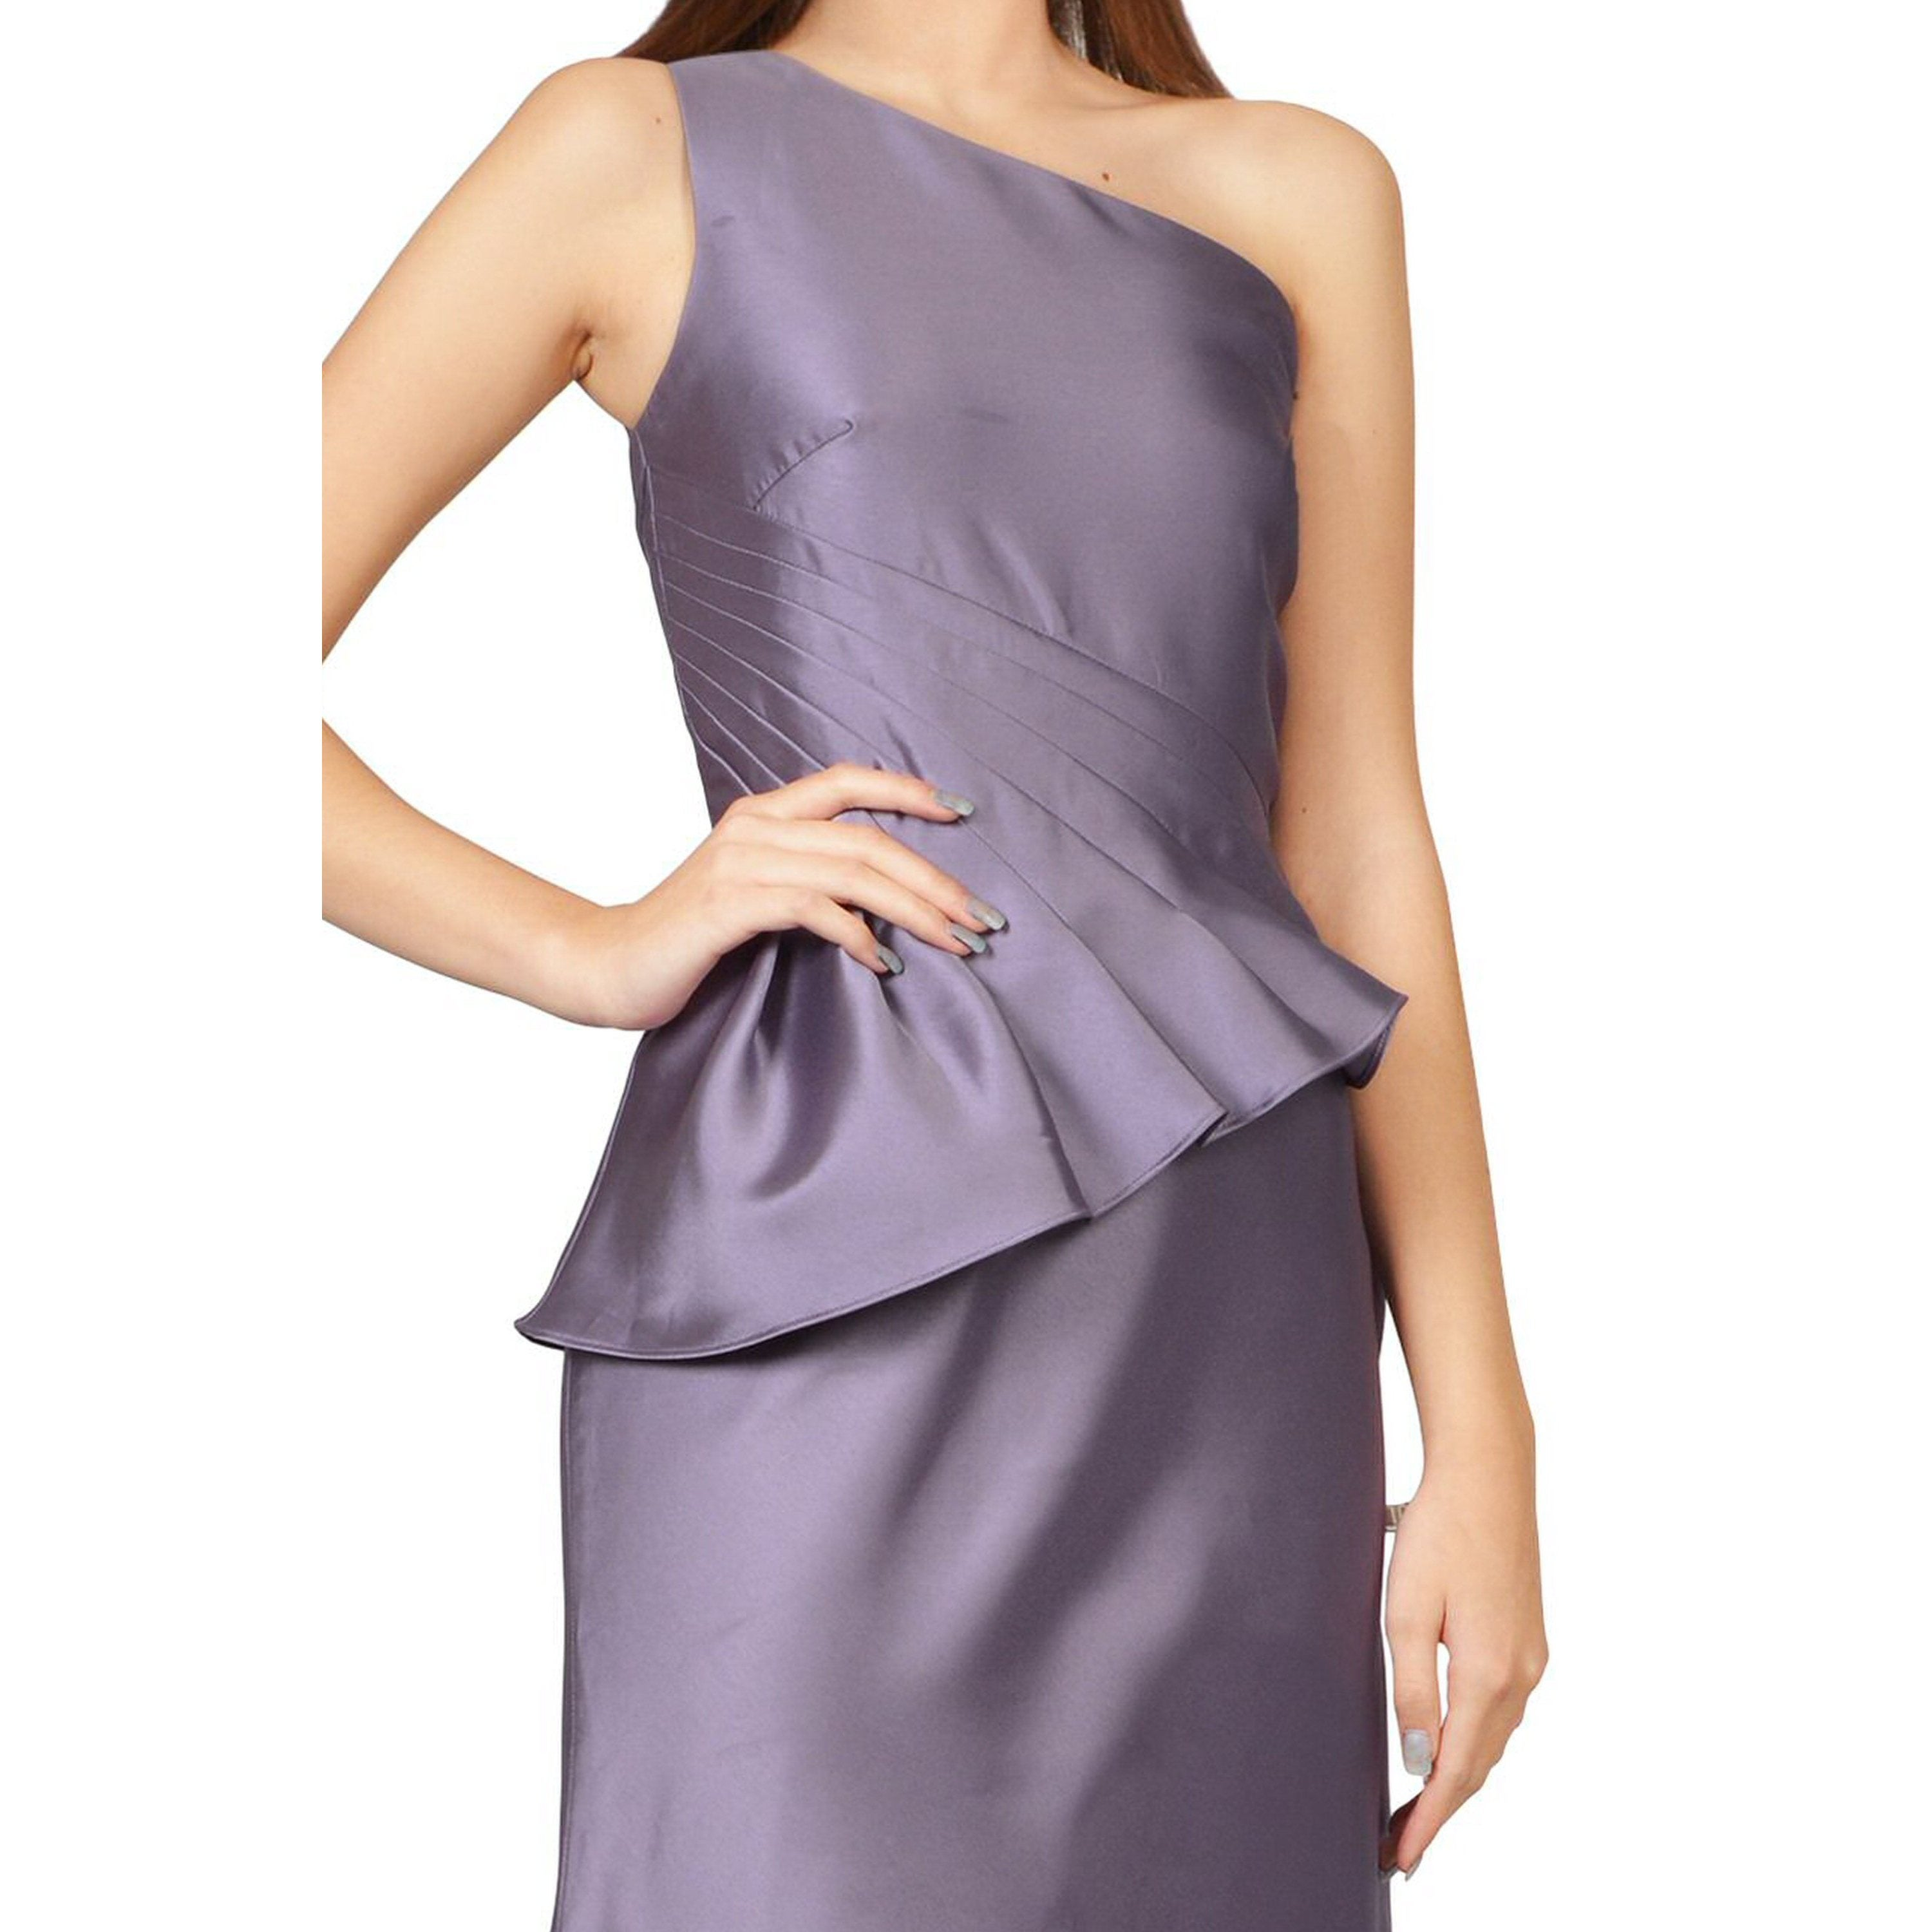 Lustrous fabric used for evening dresses